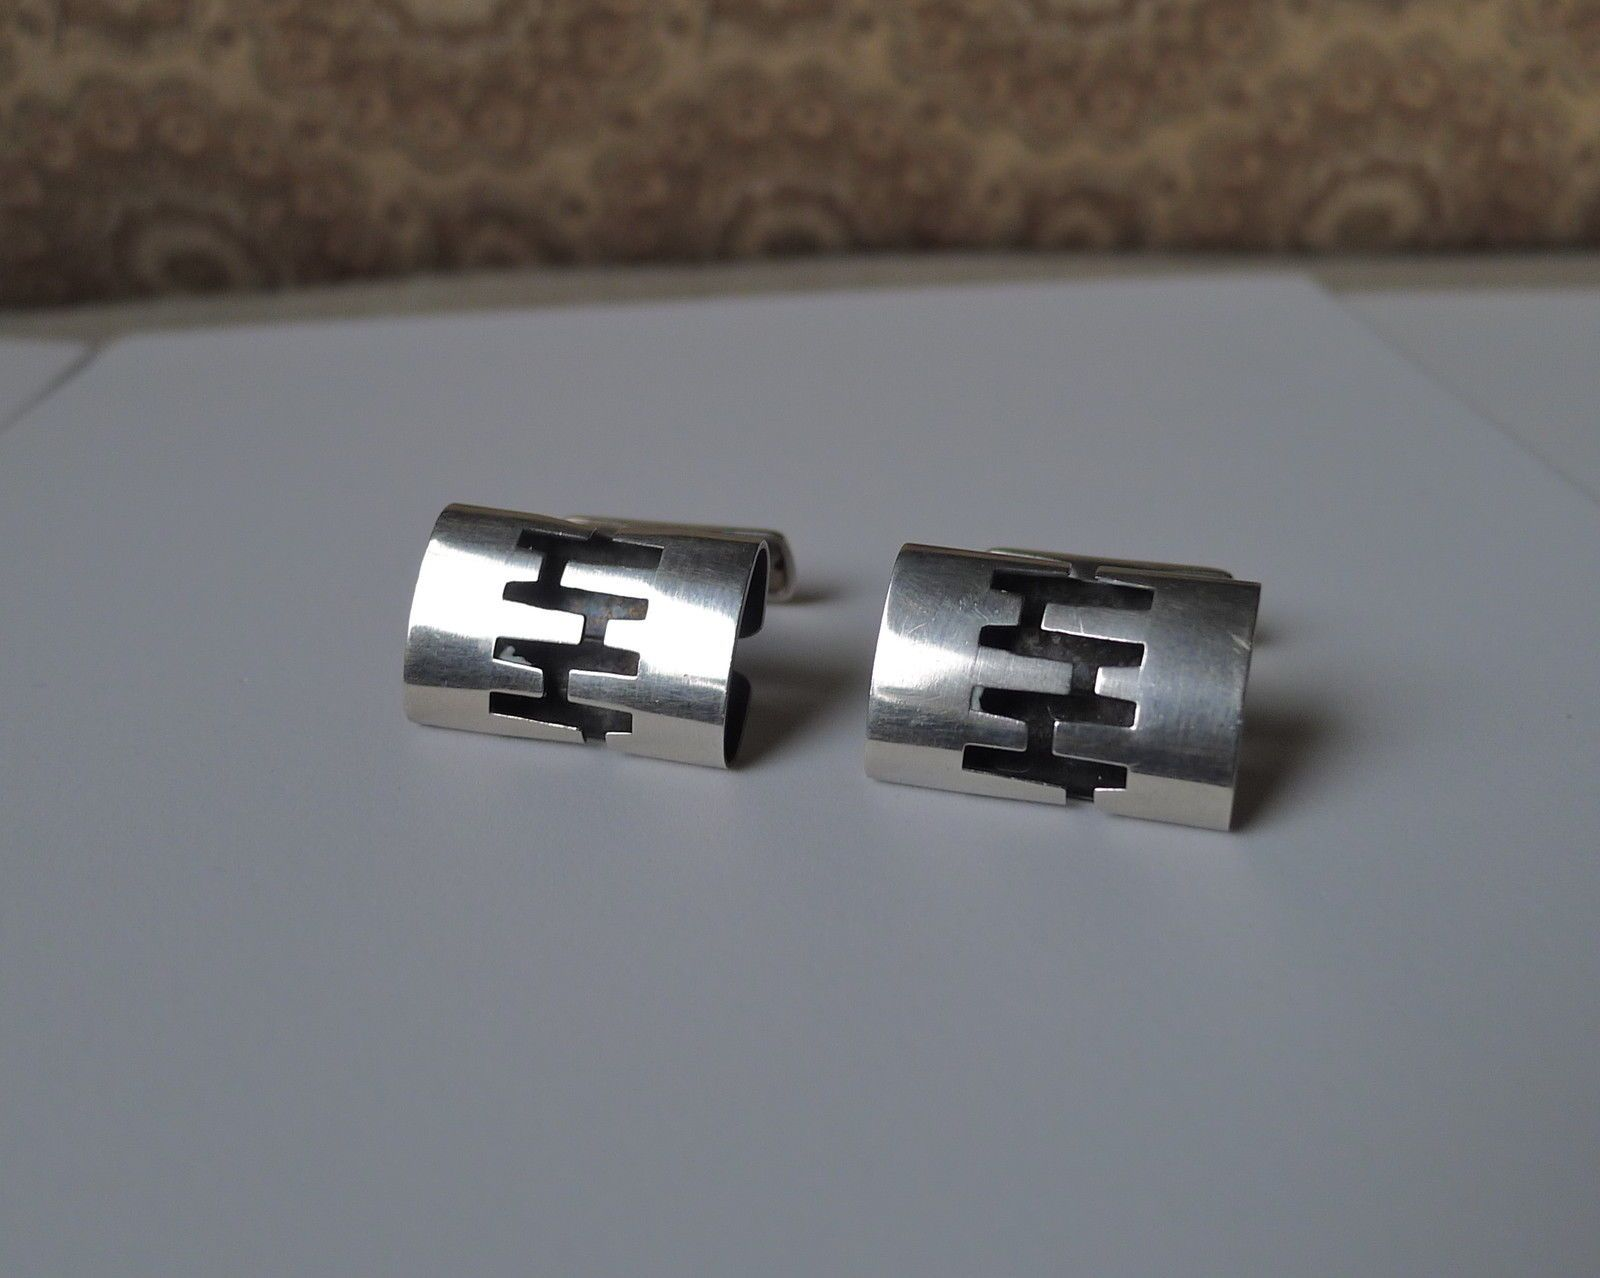 Vintage Modernist Abstract Kupittaan Kulta Finland Sterling Silver Cufflinks | eBay